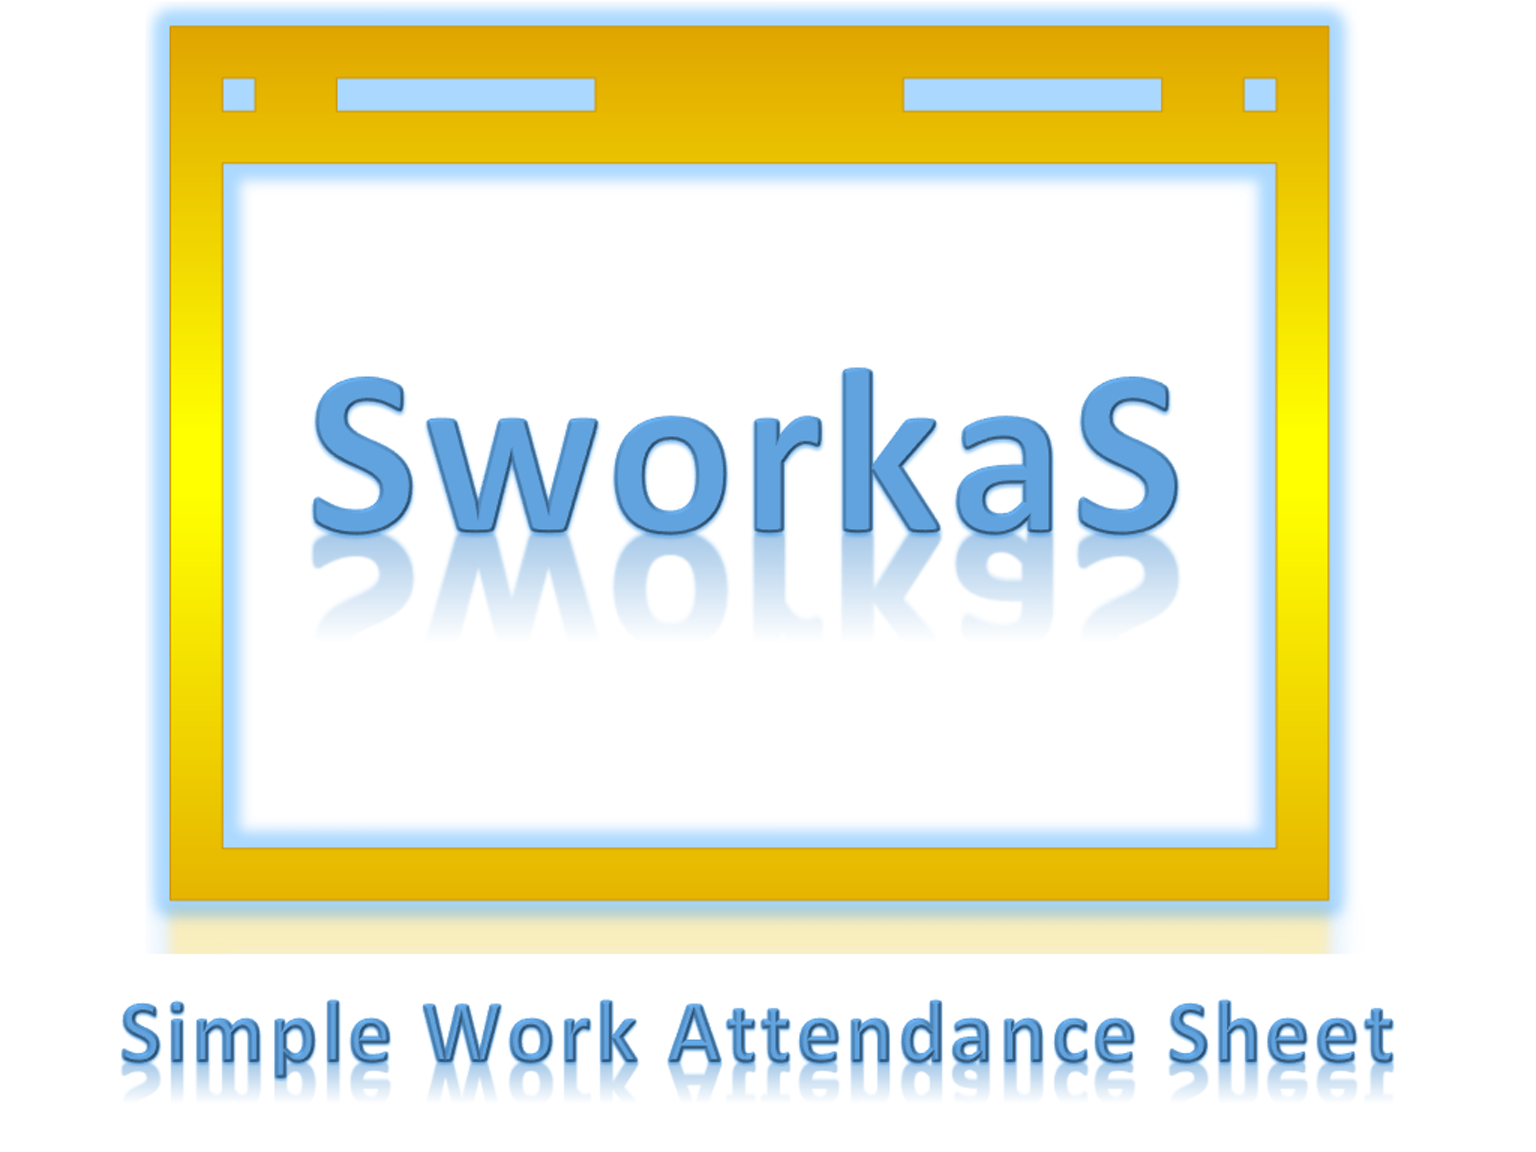 Simple Work Attendance Sheet (S.work.a.S.) by Andrea ...